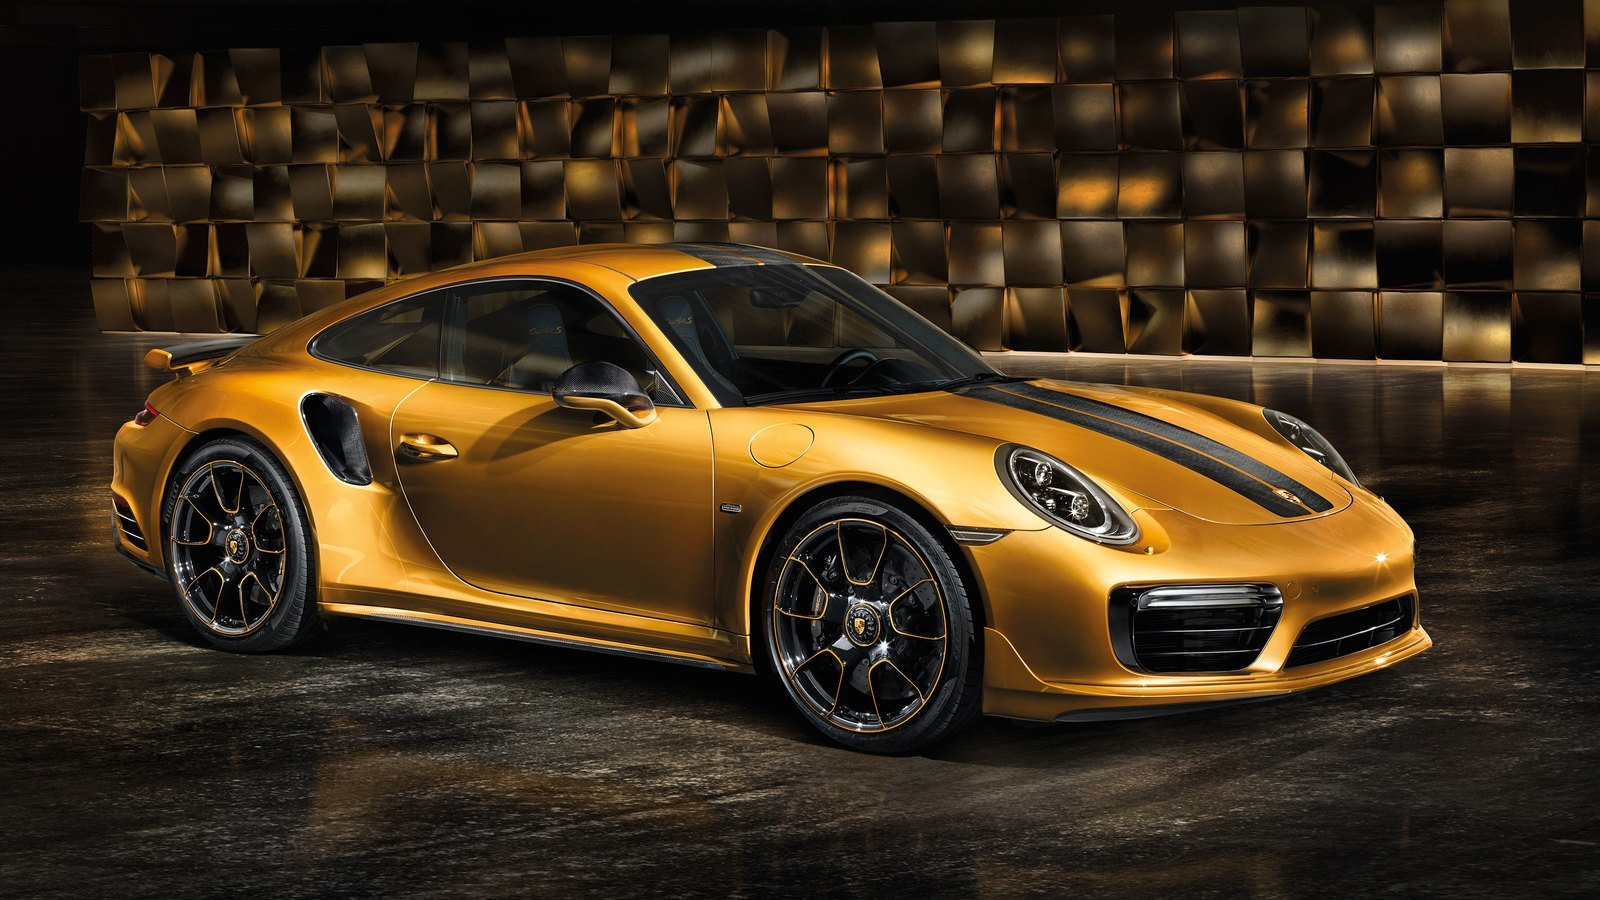 2018 Porsche 911 Turbo S Exclusive Series Price Design